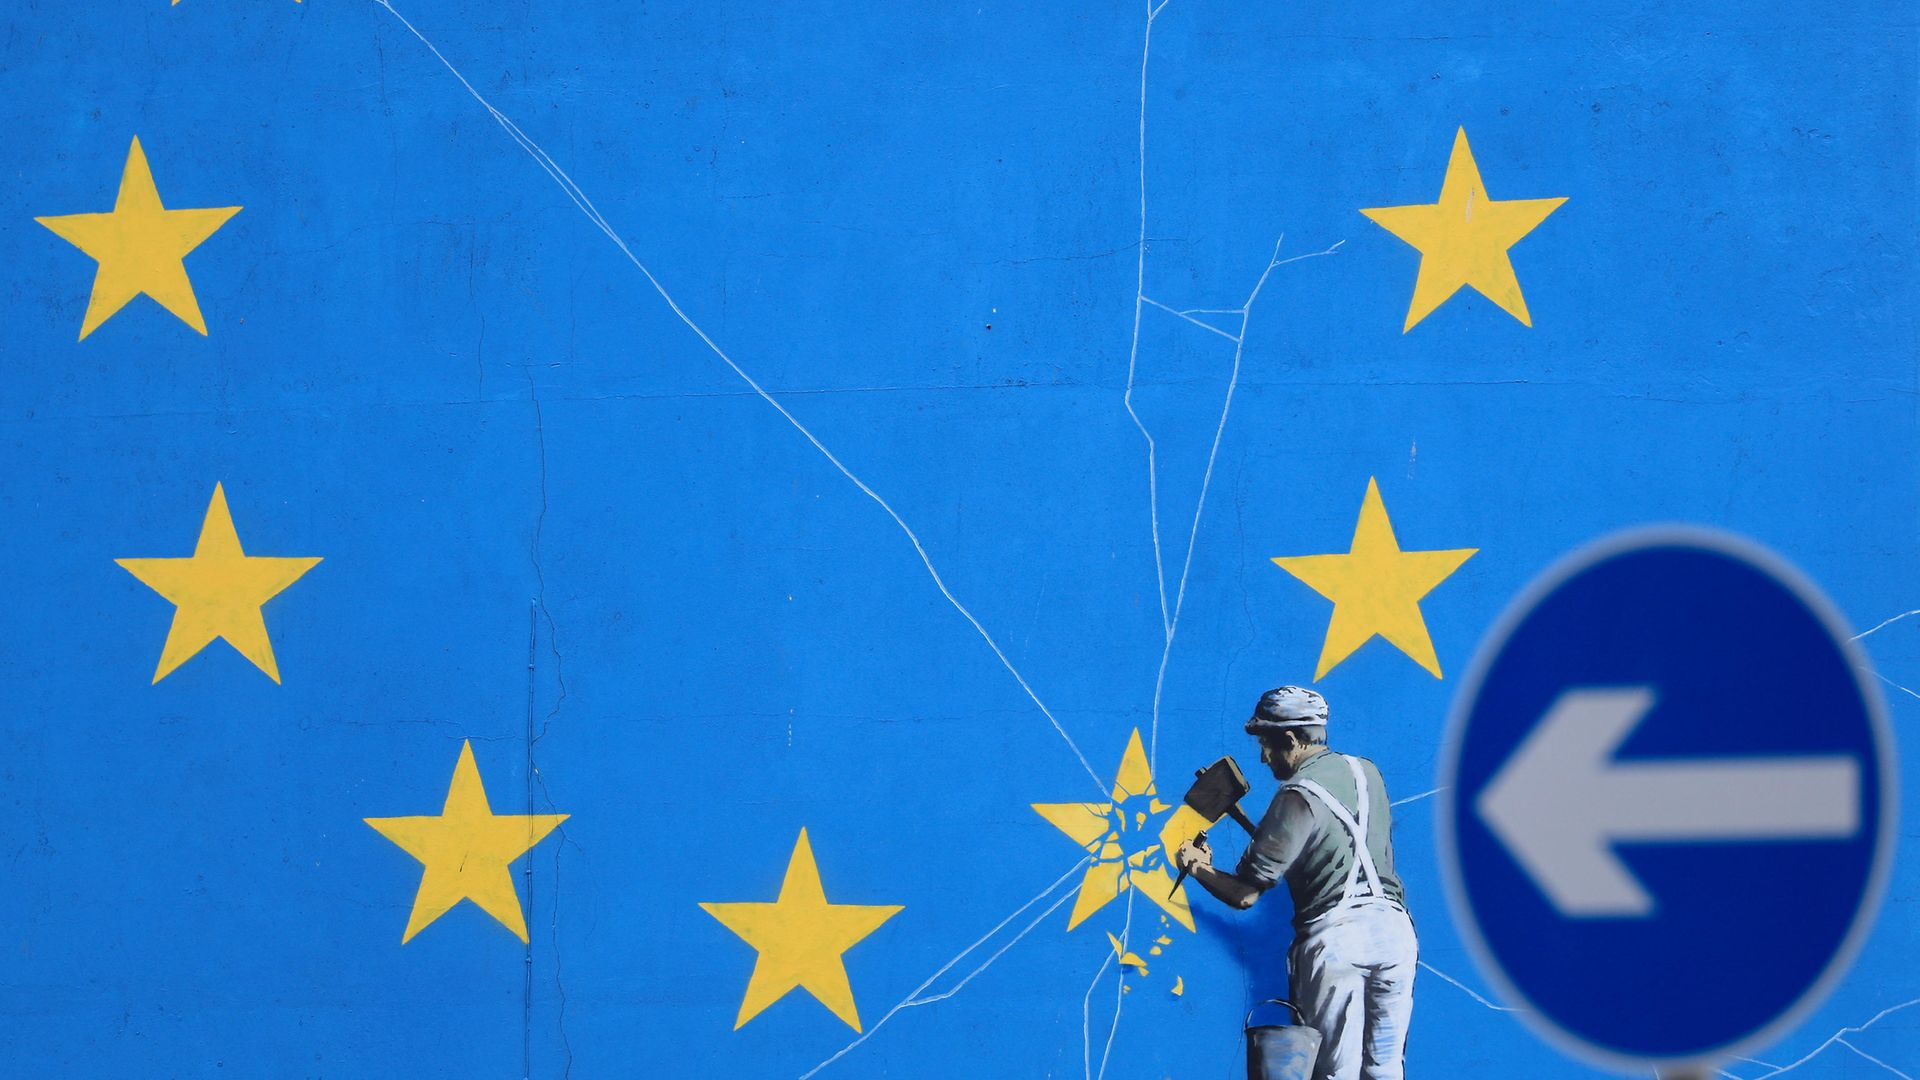 A Brexit-inspired mural by artist Banksy in Dover, Kent - Credit: PA